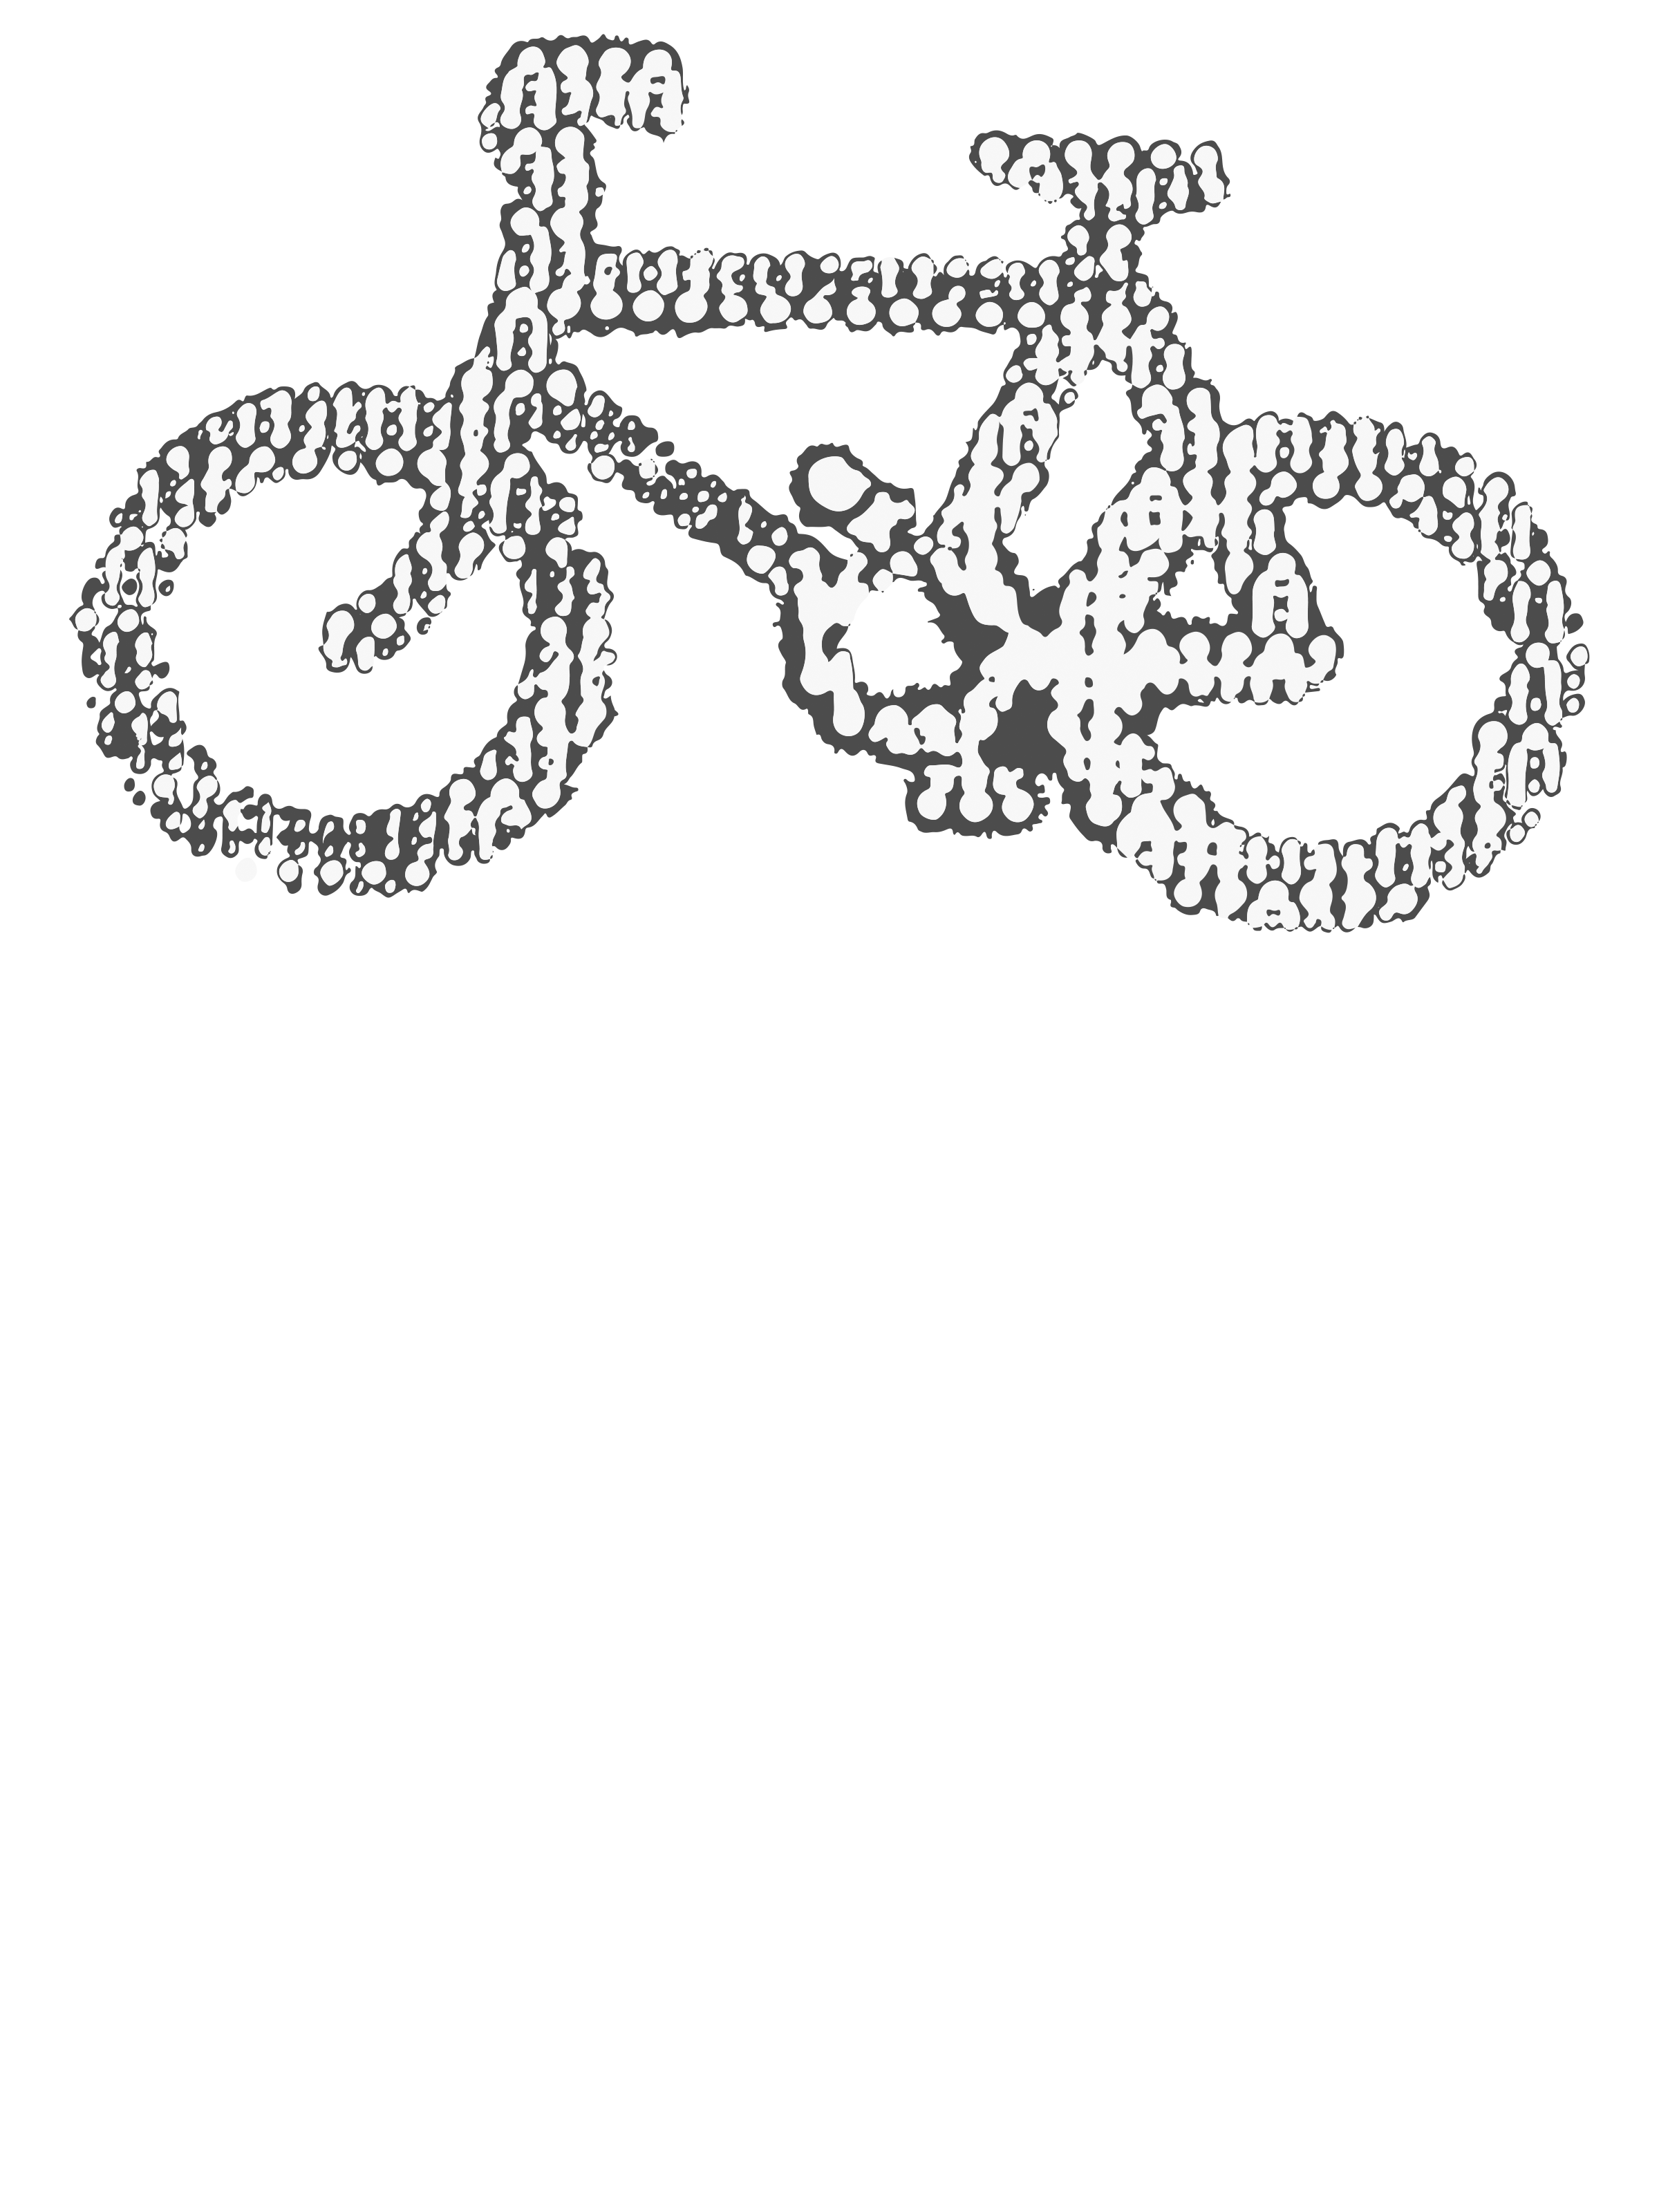 0318 – Traffic Light Bicycle